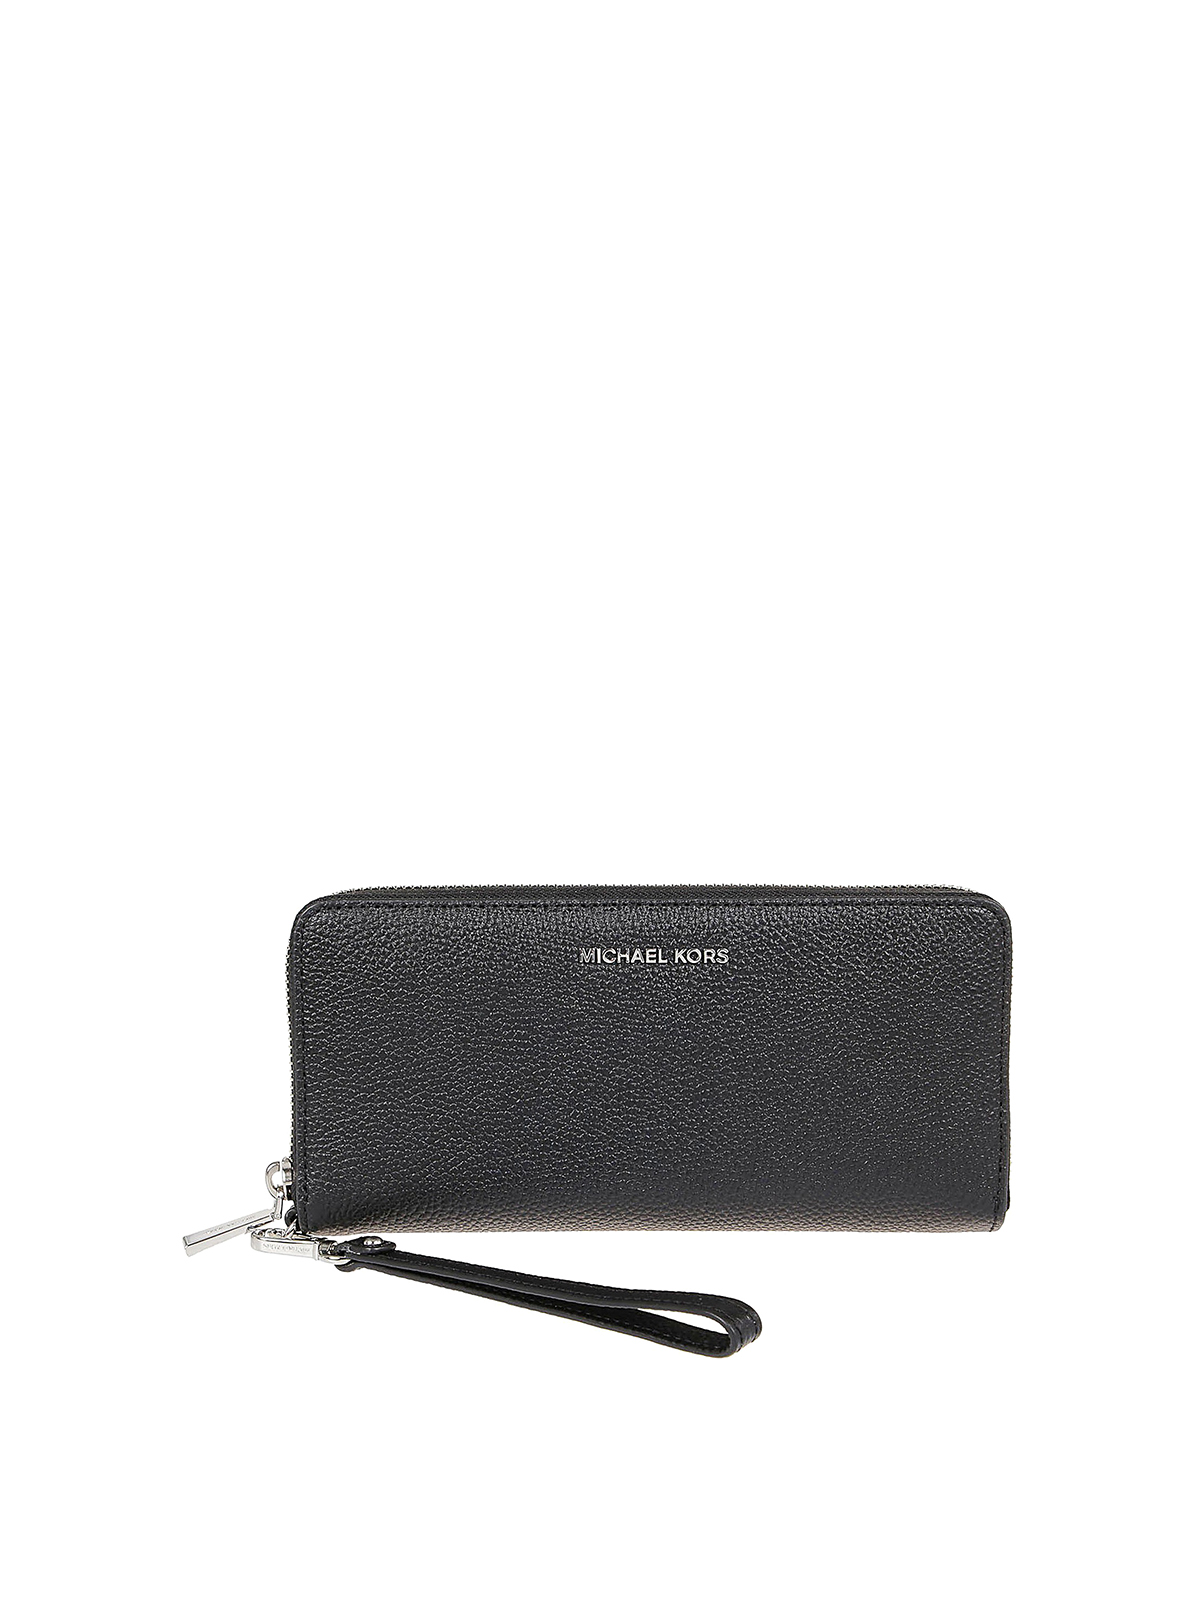 Michael Kors JET SET PEBBLED LEATHER CONTINENTAL WRISTLET